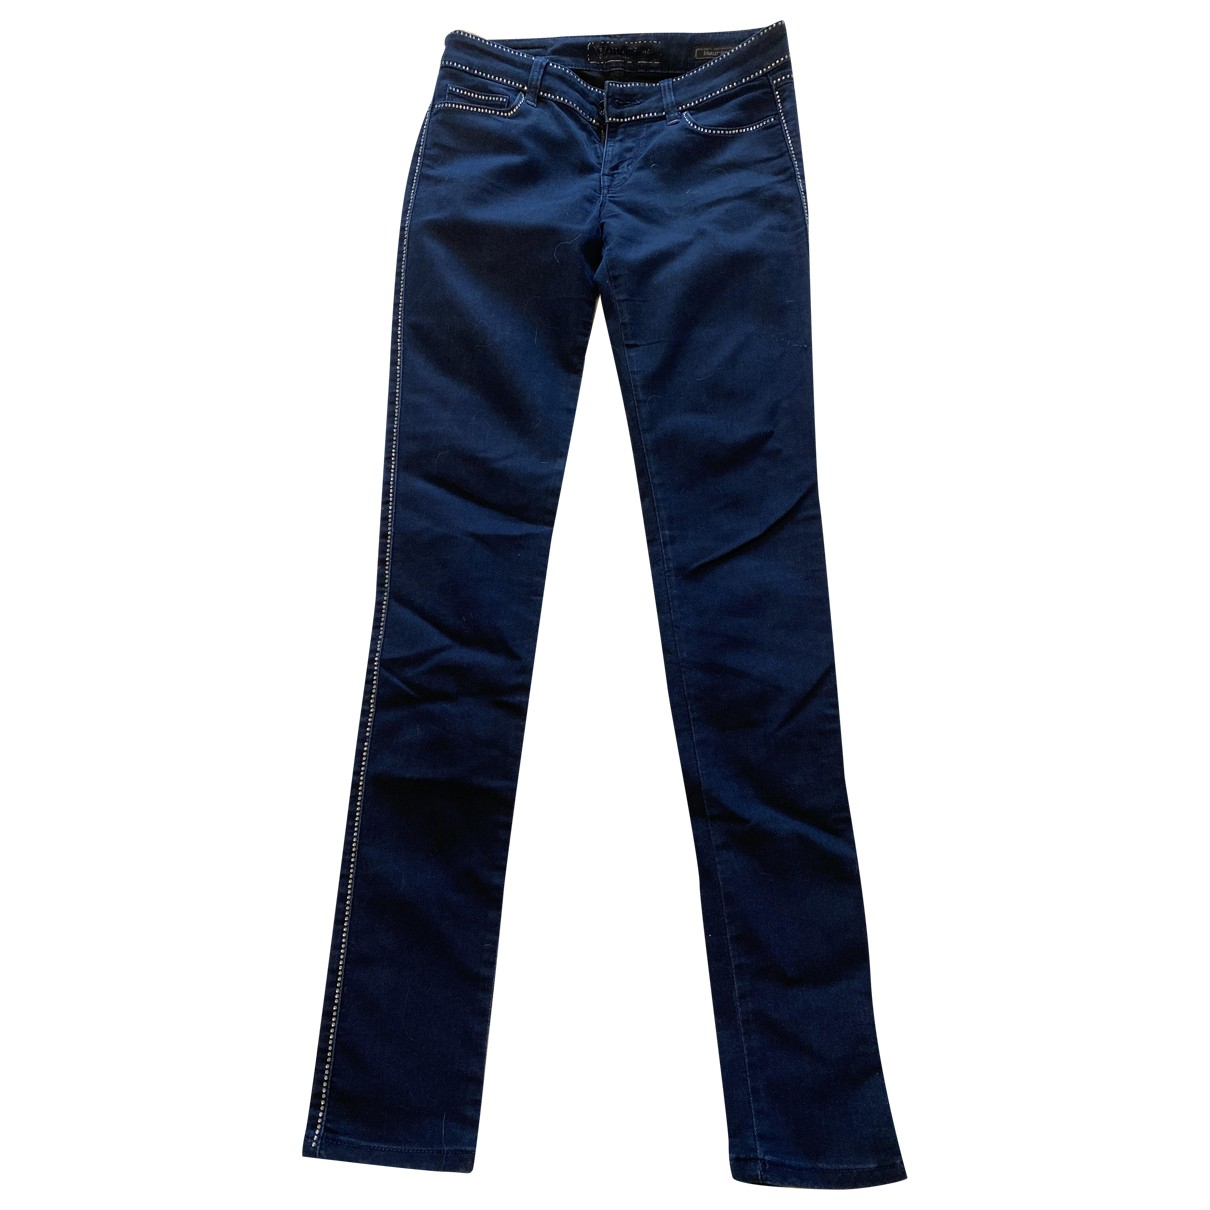 Guess \N Blue Cotton - elasthane Jeans for Women 36 FR